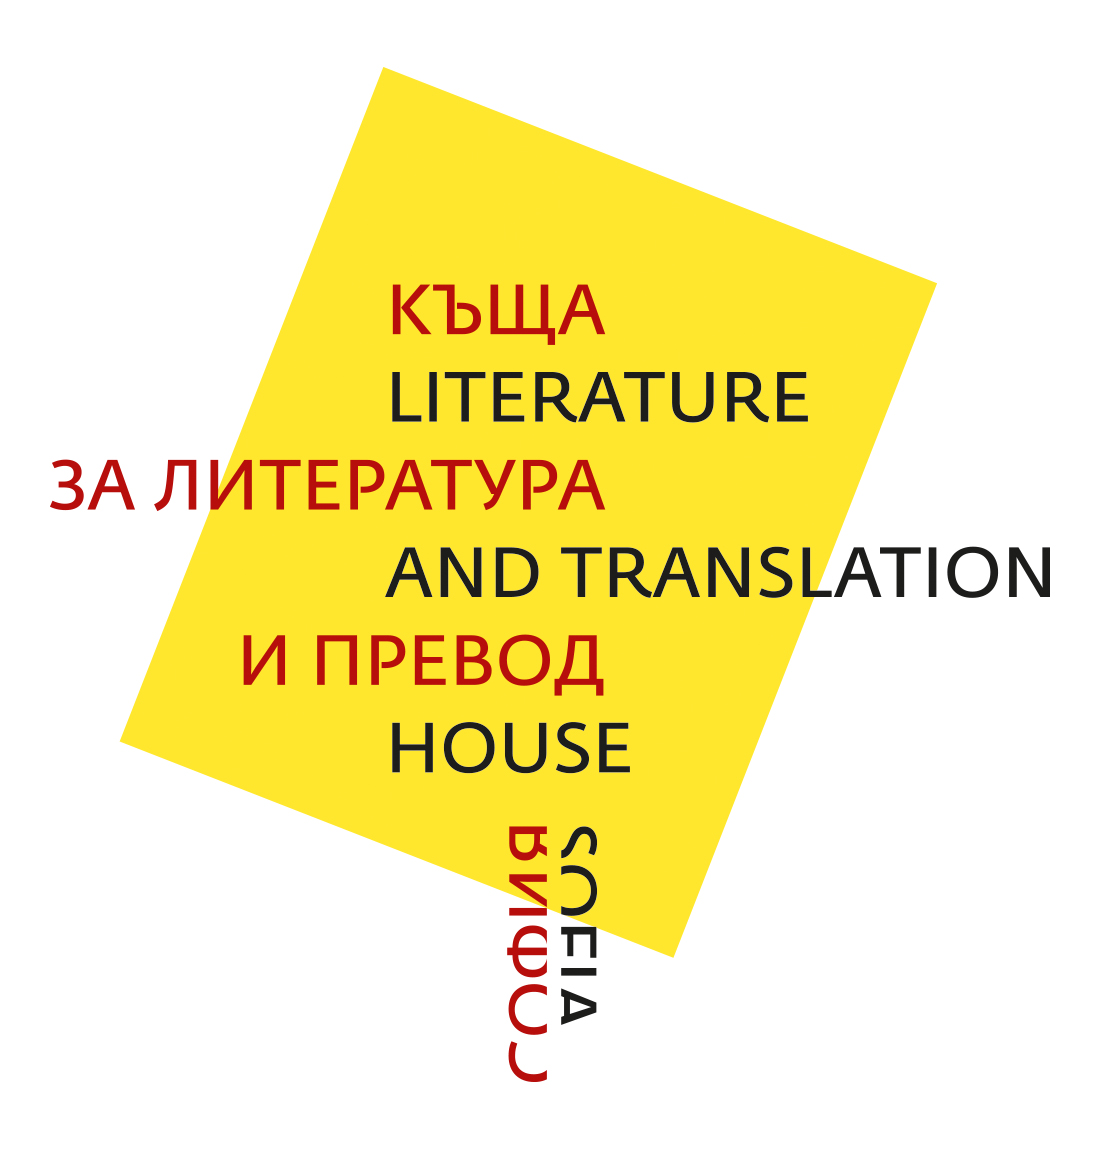 Literature&Translation House